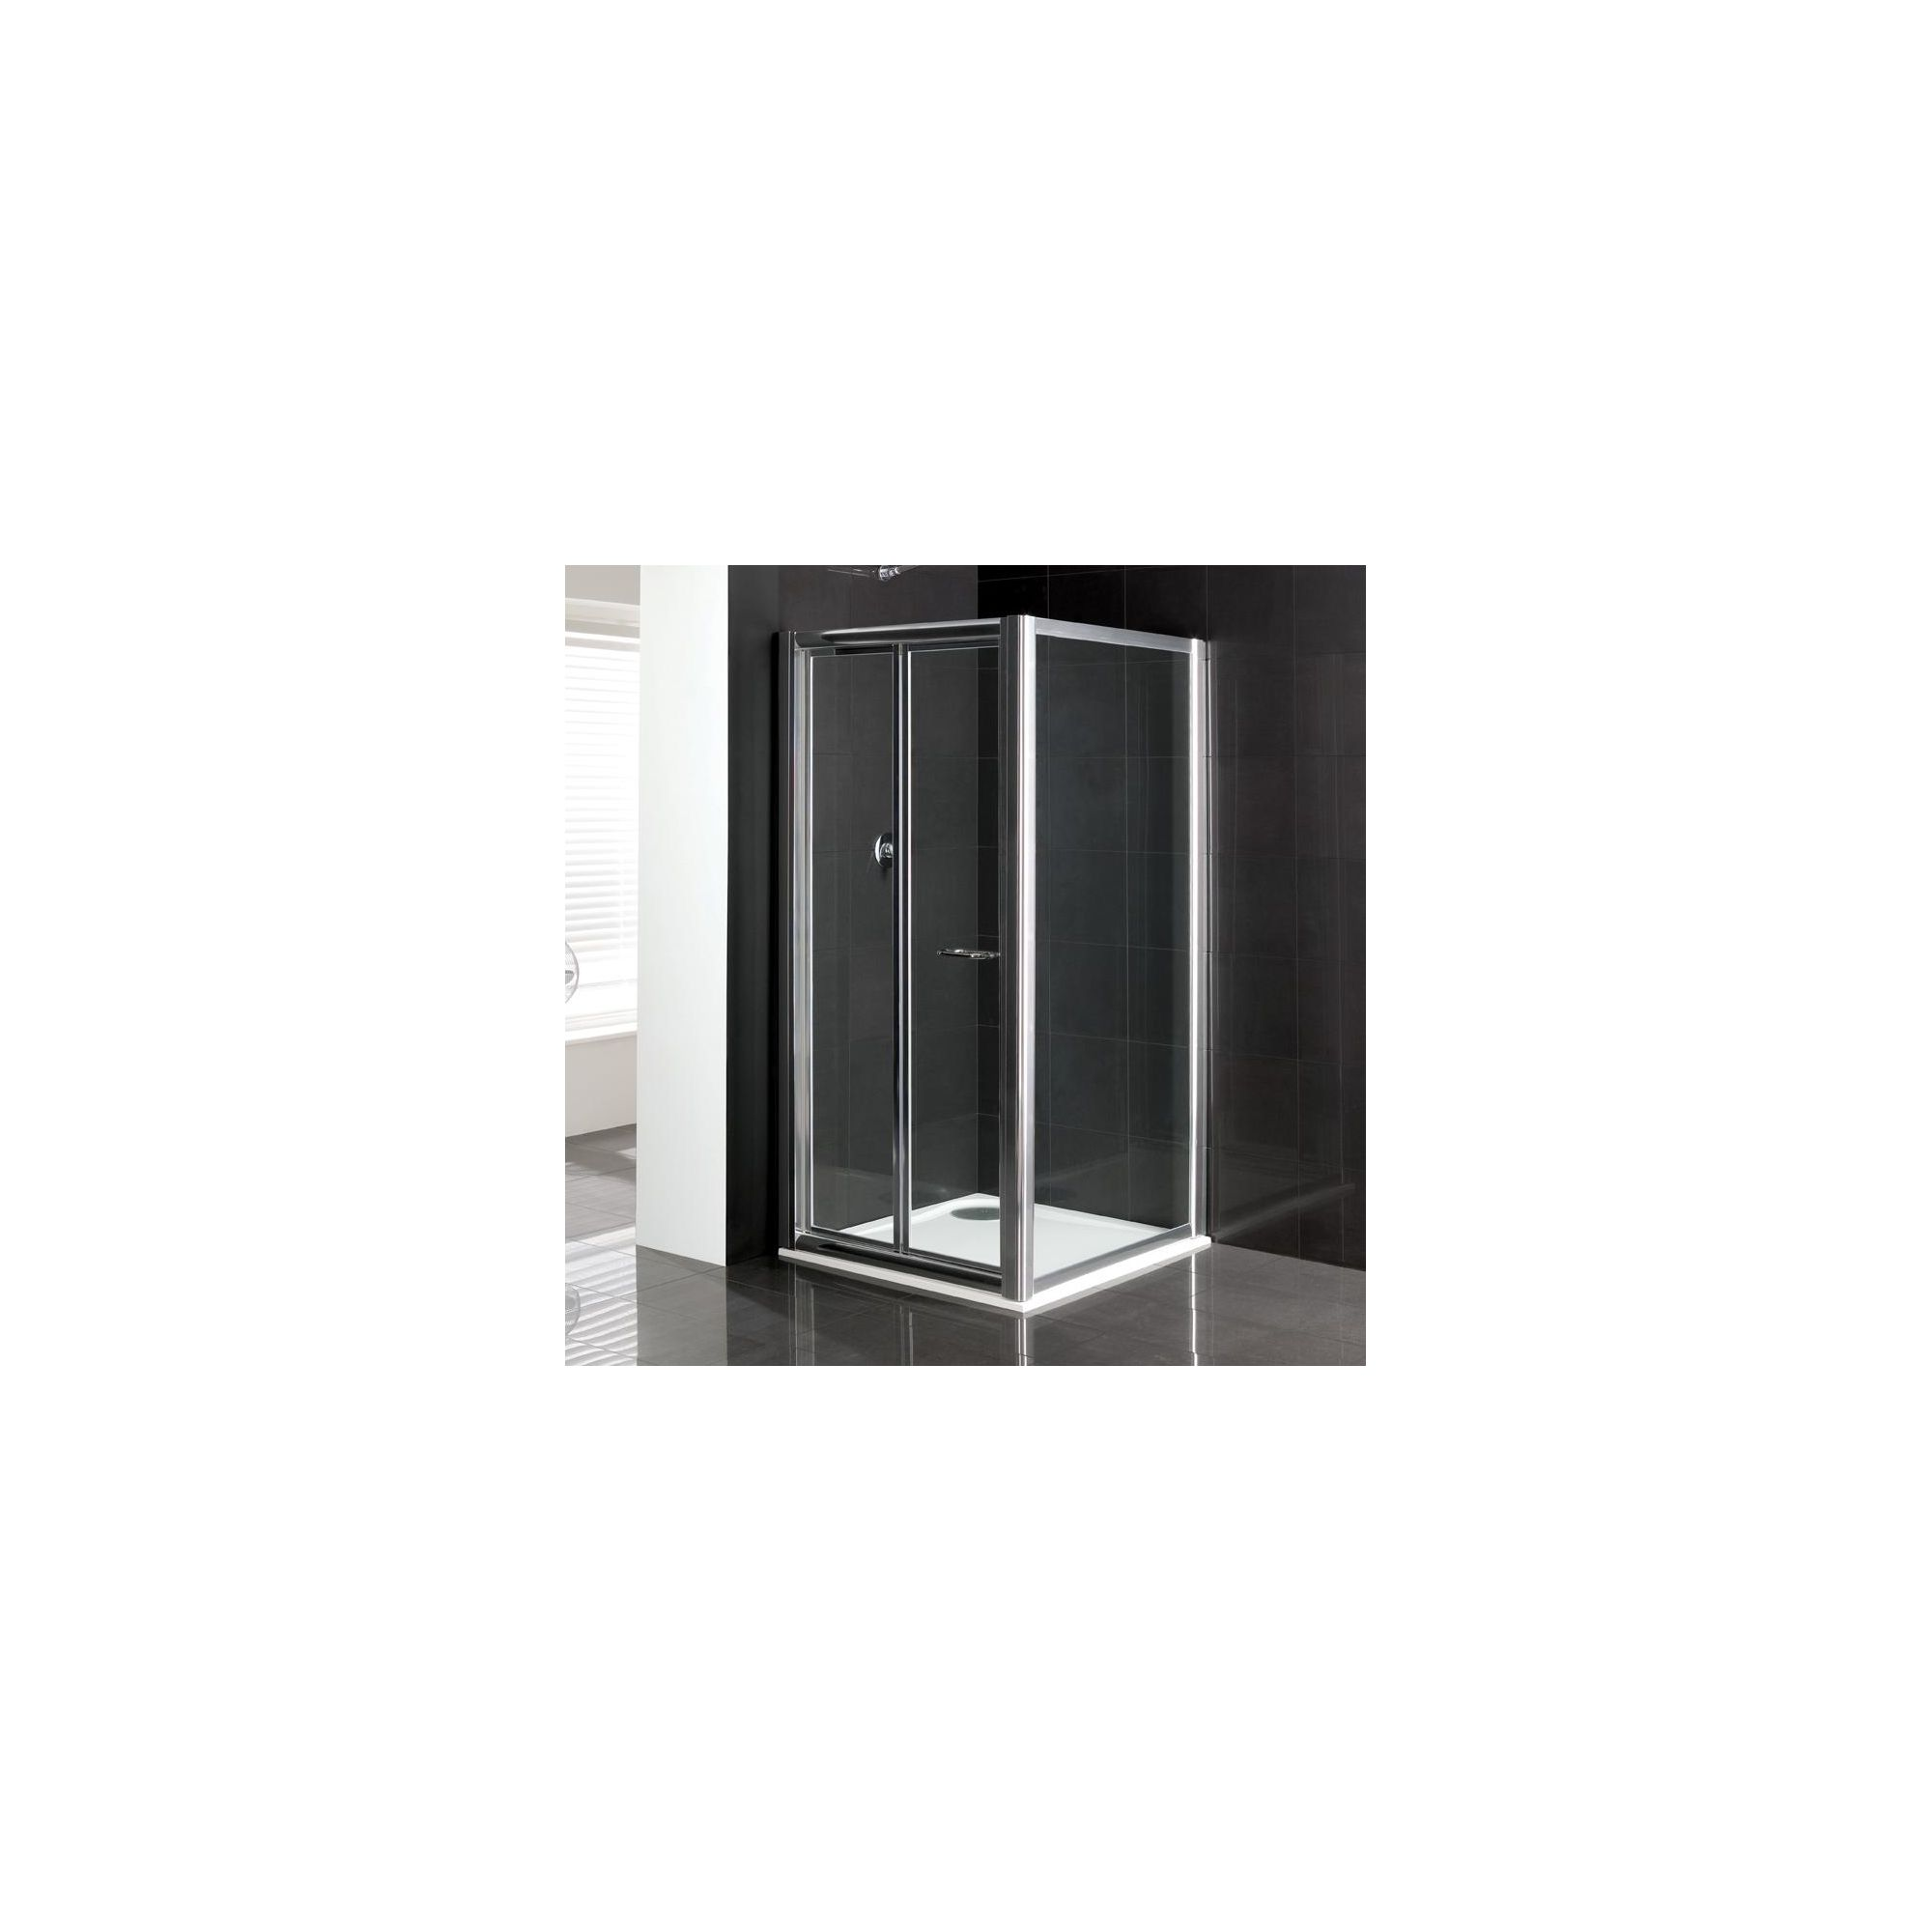 Duchy Elite Silver Bi-Fold Door Shower Enclosure, 1000mm x 760mm, Standard Tray, 6mm Glass at Tesco Direct